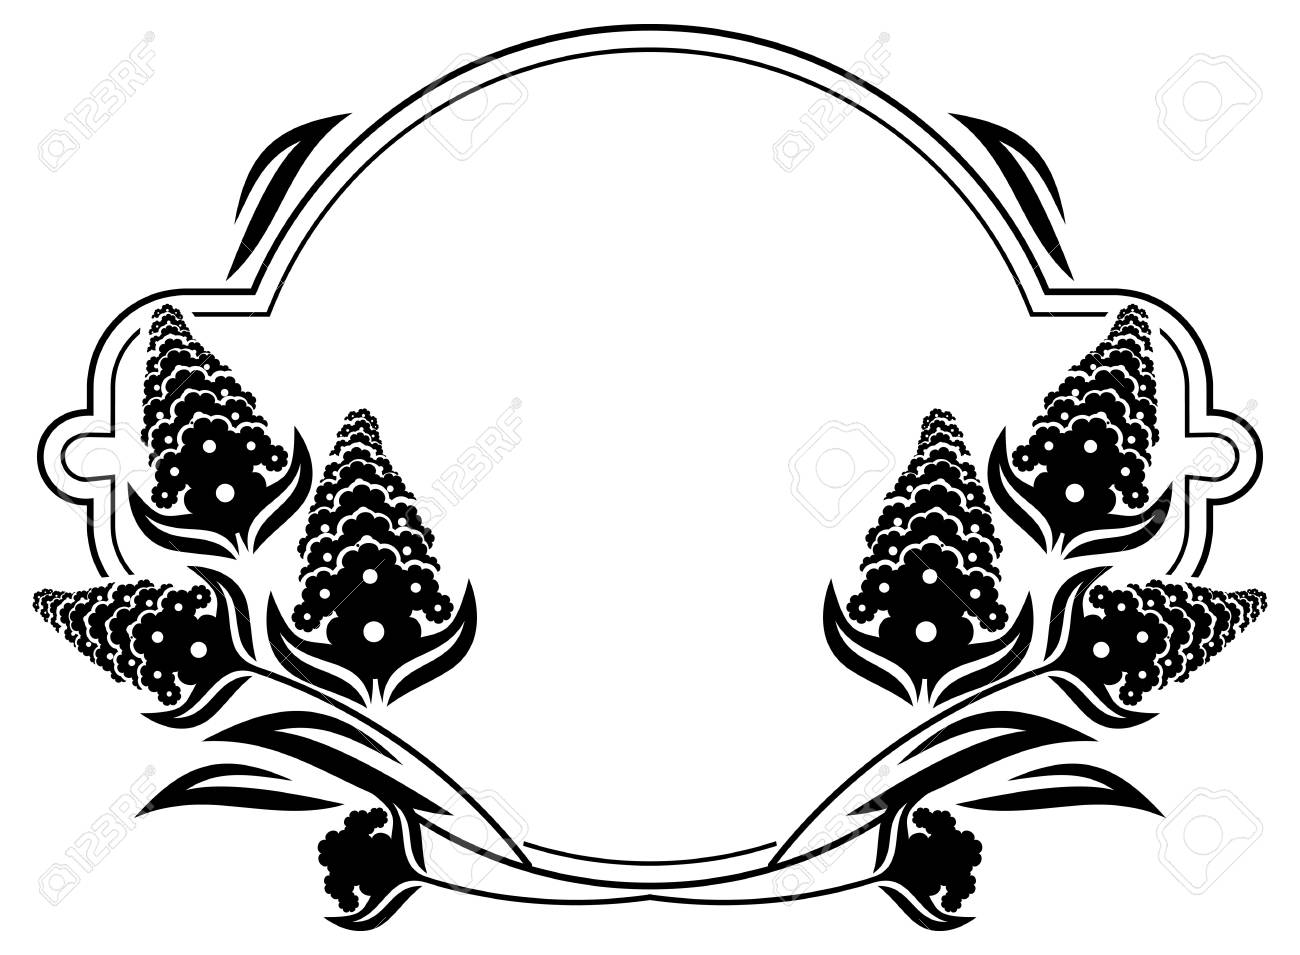 Round Label With Black And White Decorative Flowers Silhouettes